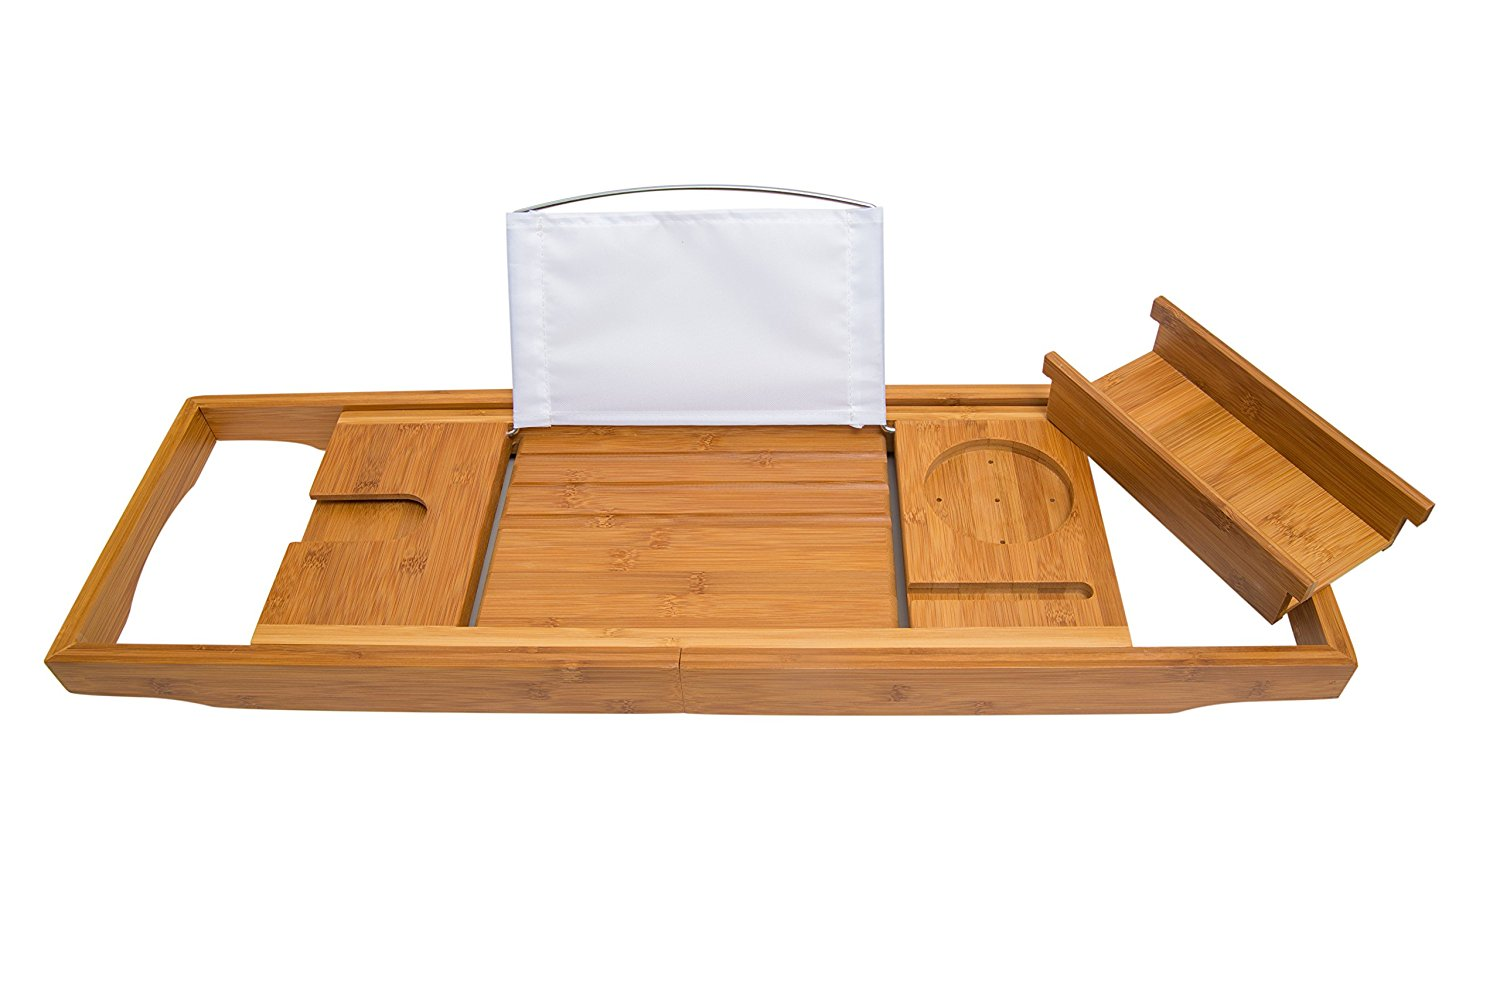 Cheap Wood Bath Caddy, find Wood Bath Caddy deals on line at Alibaba.com